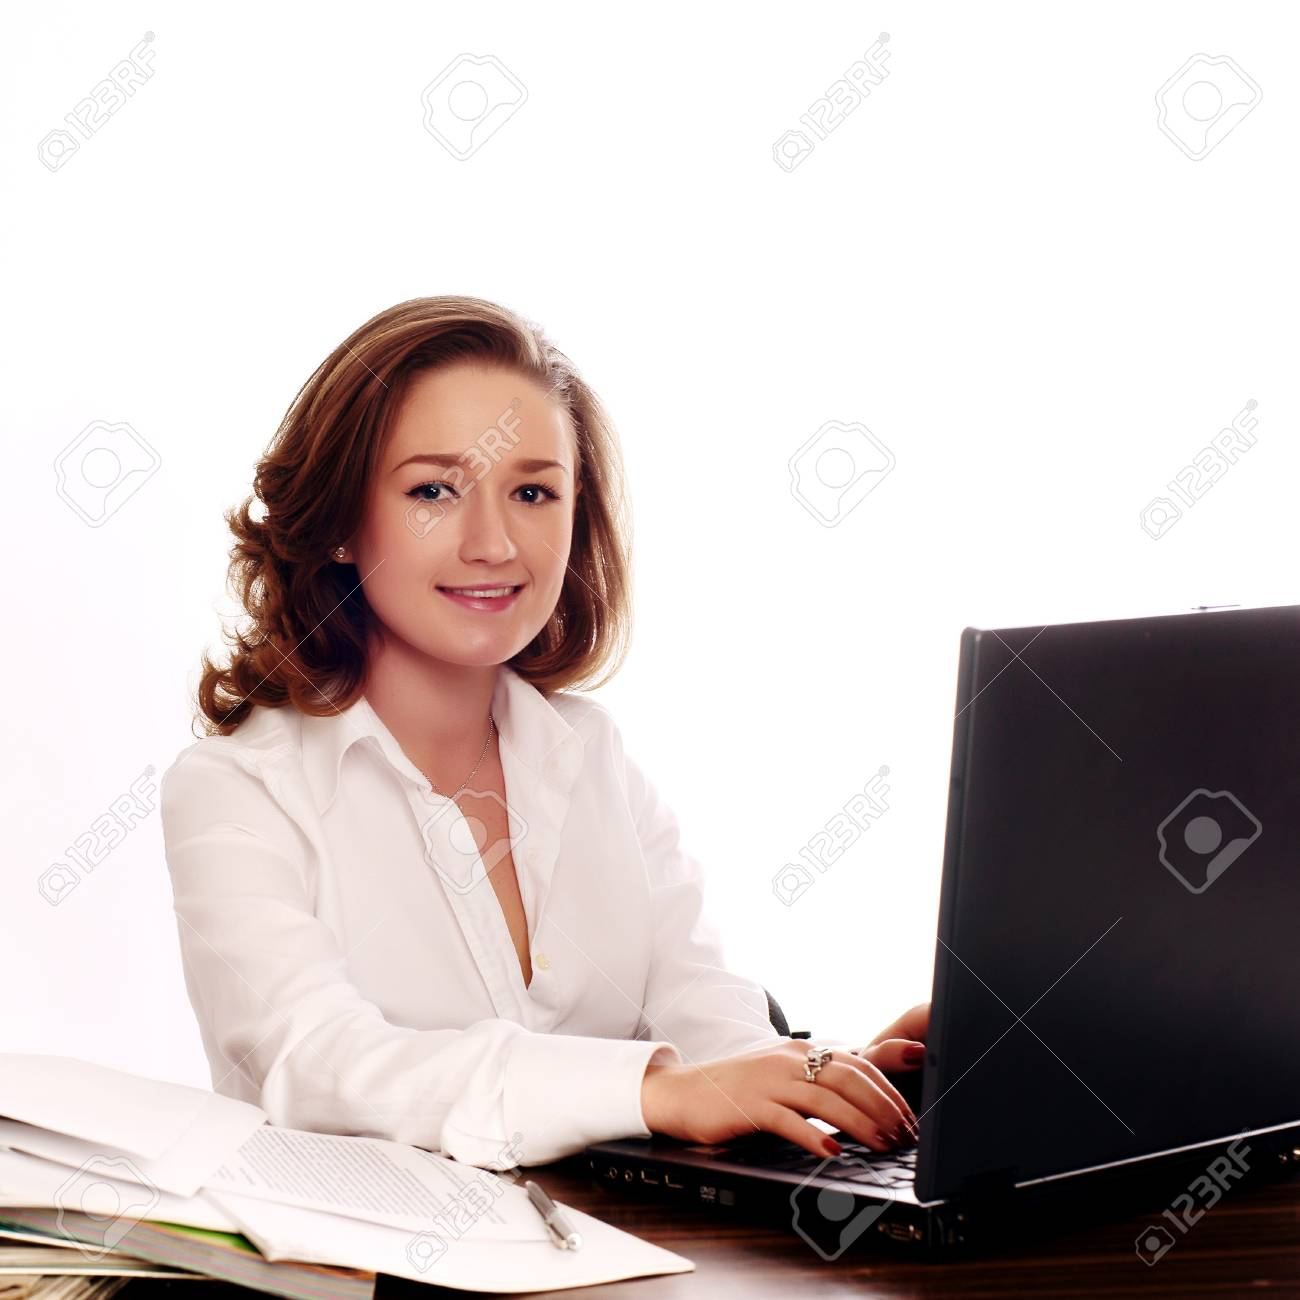 Businesswoman using a laptop and smiling Stock Photo - 7631053